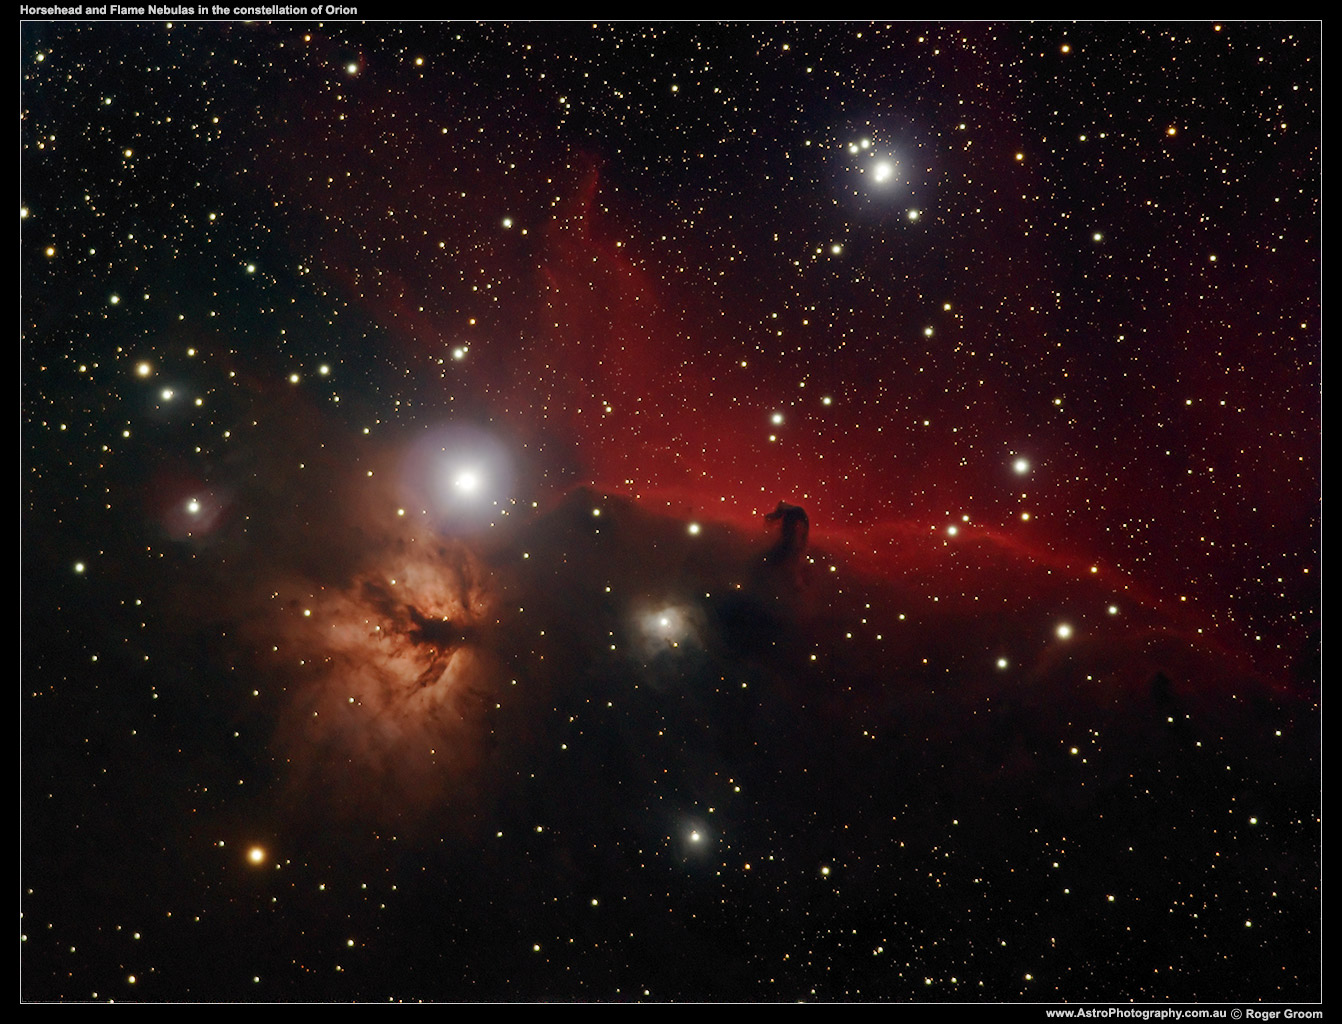 Horsehead and Flame Nebulas in the constellation of Orion